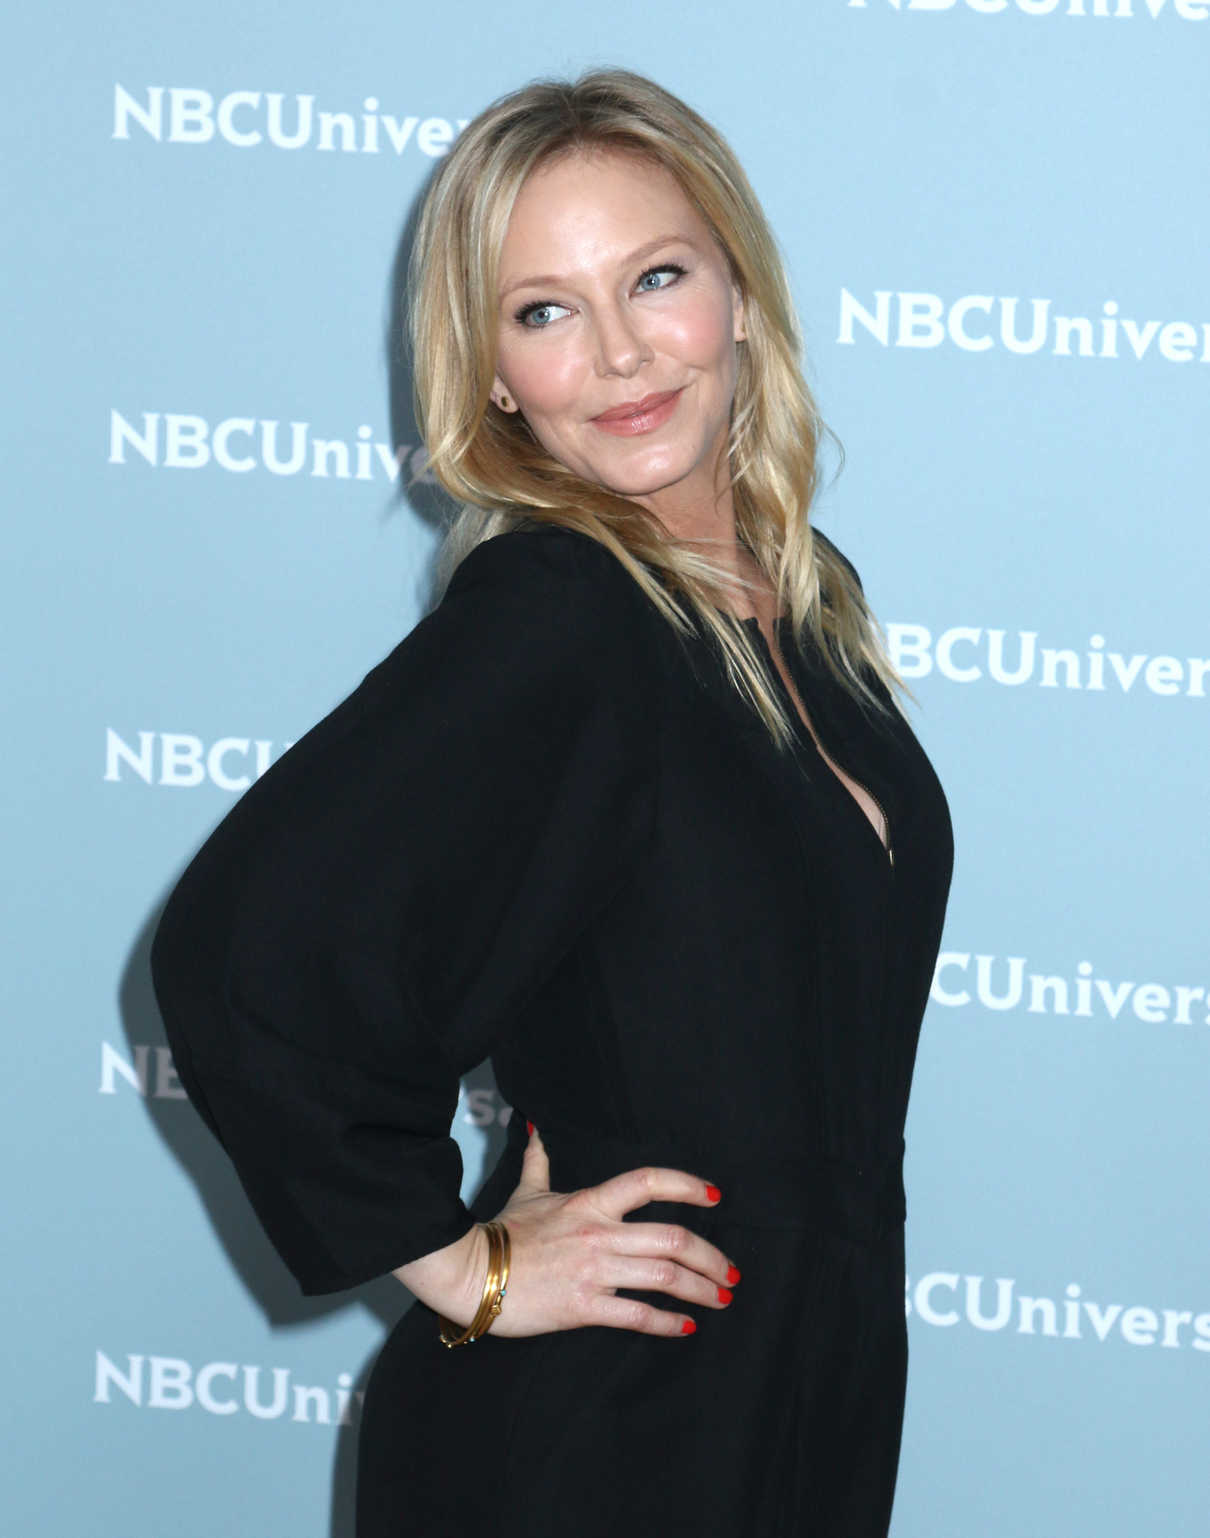 Kelli Giddish at NBCUniversal Upfront Presentation in New York City 05/14/2018-4